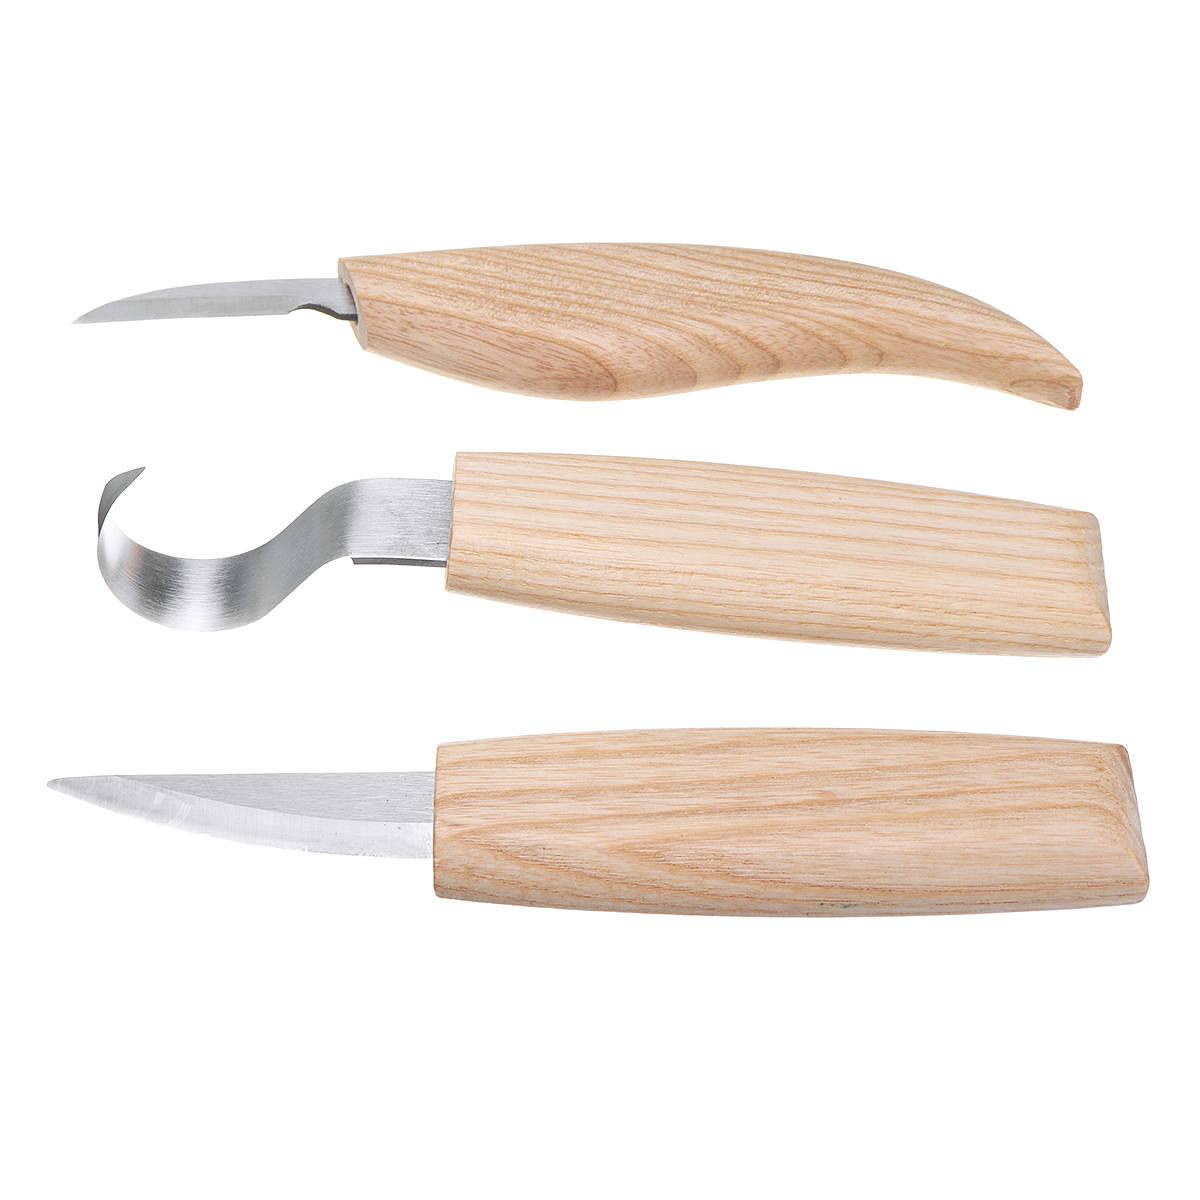 Beaver Woodworking Tools